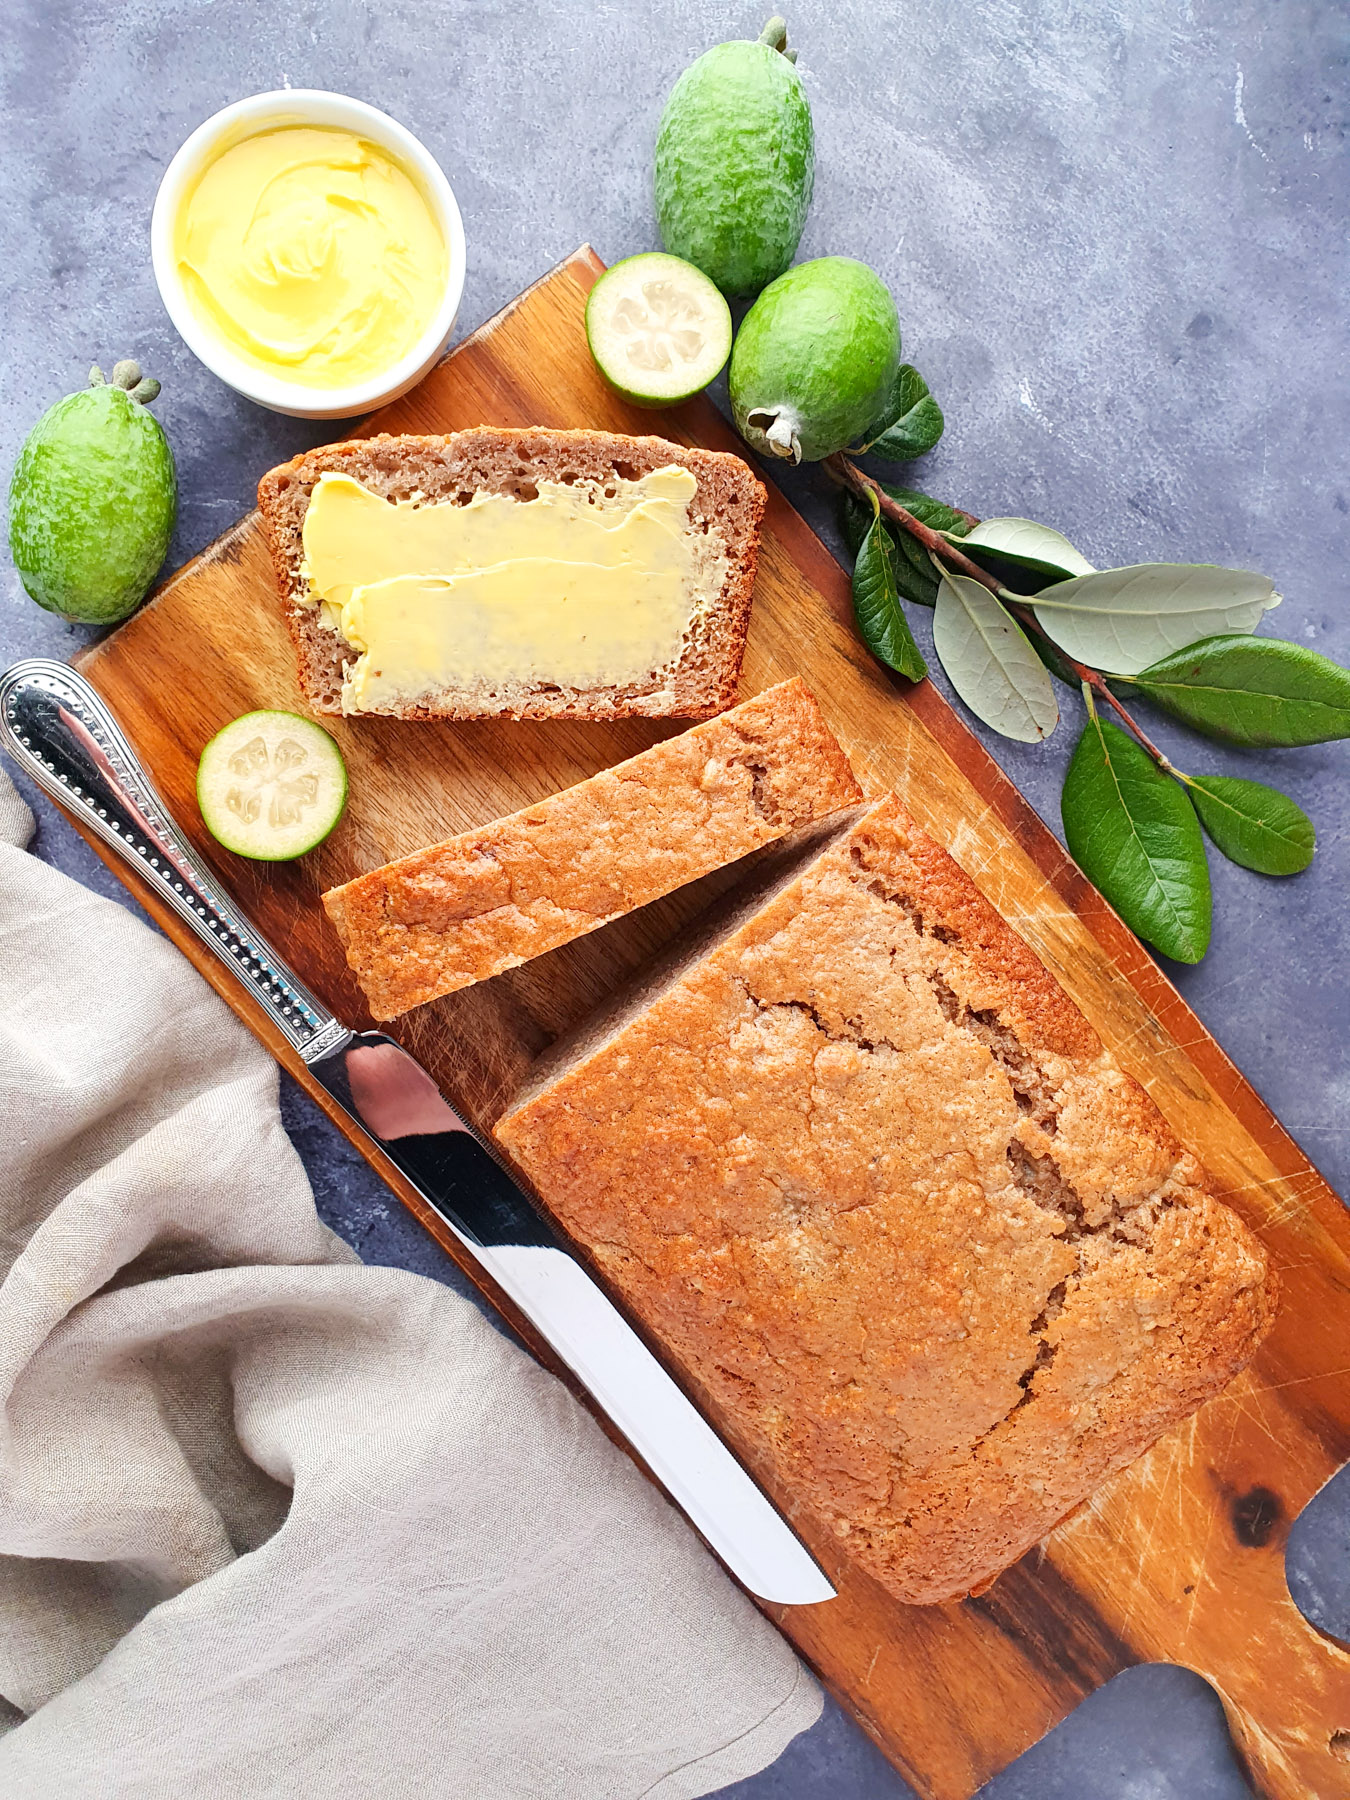 Sliced feijoa loaf on a chopping board, with one buttered slice, fresh feijoas and leaves and a butter knife.